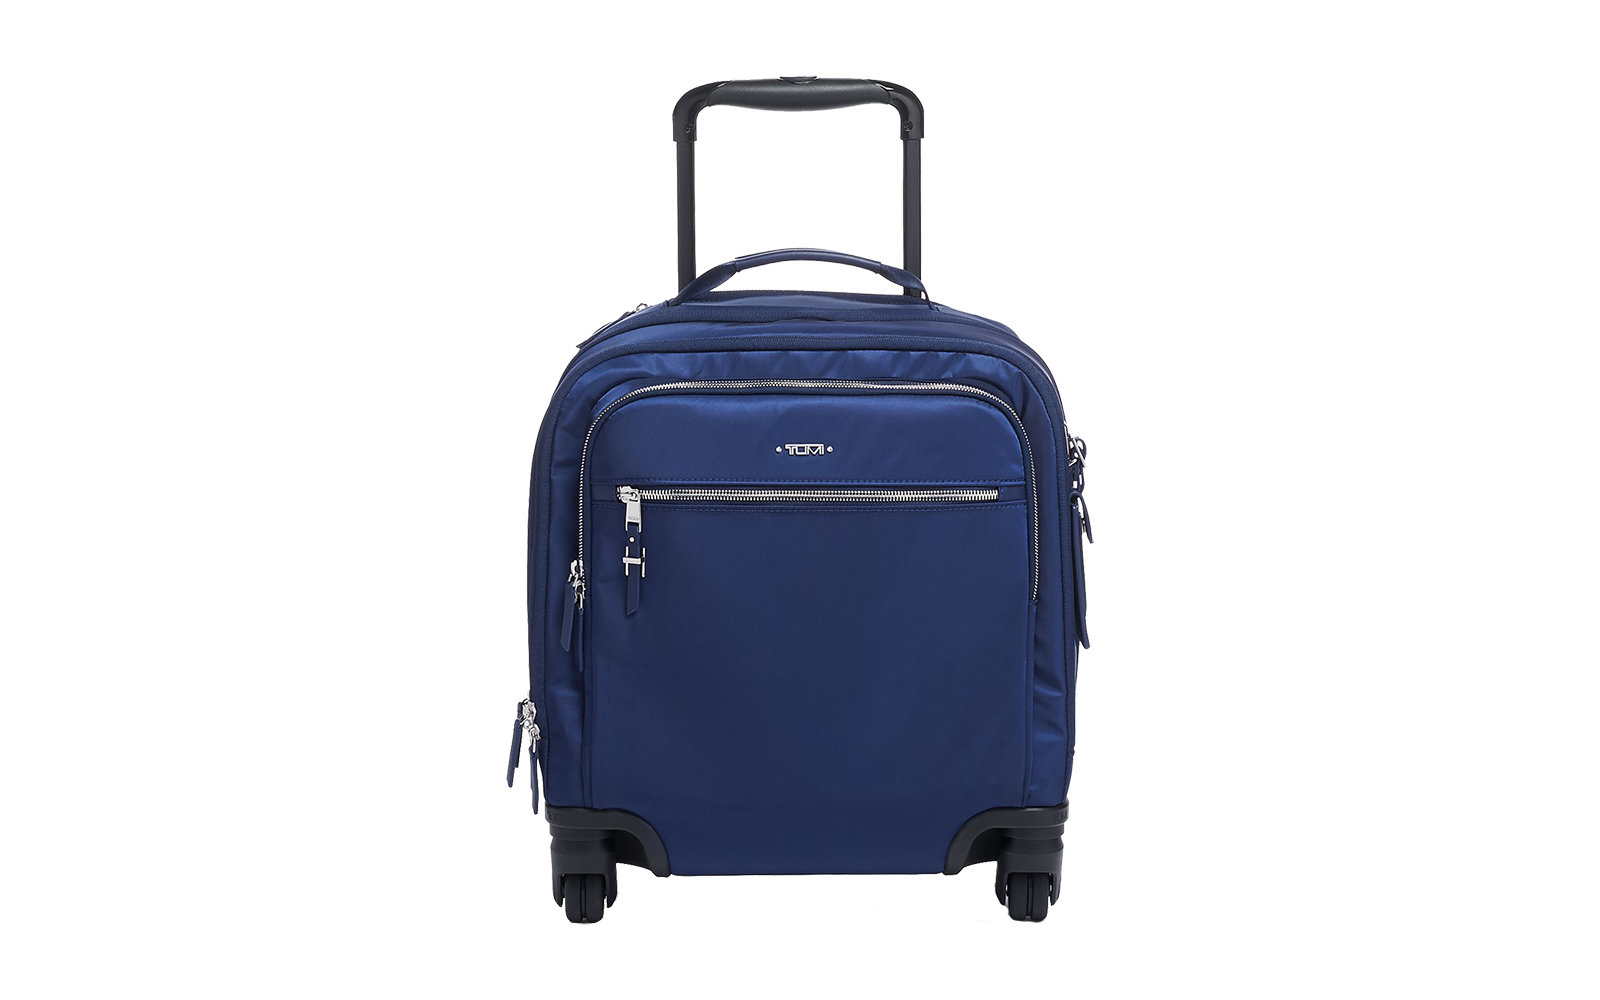 You don't have to wait until cyber monday to shop incredible luggage deals at tumi